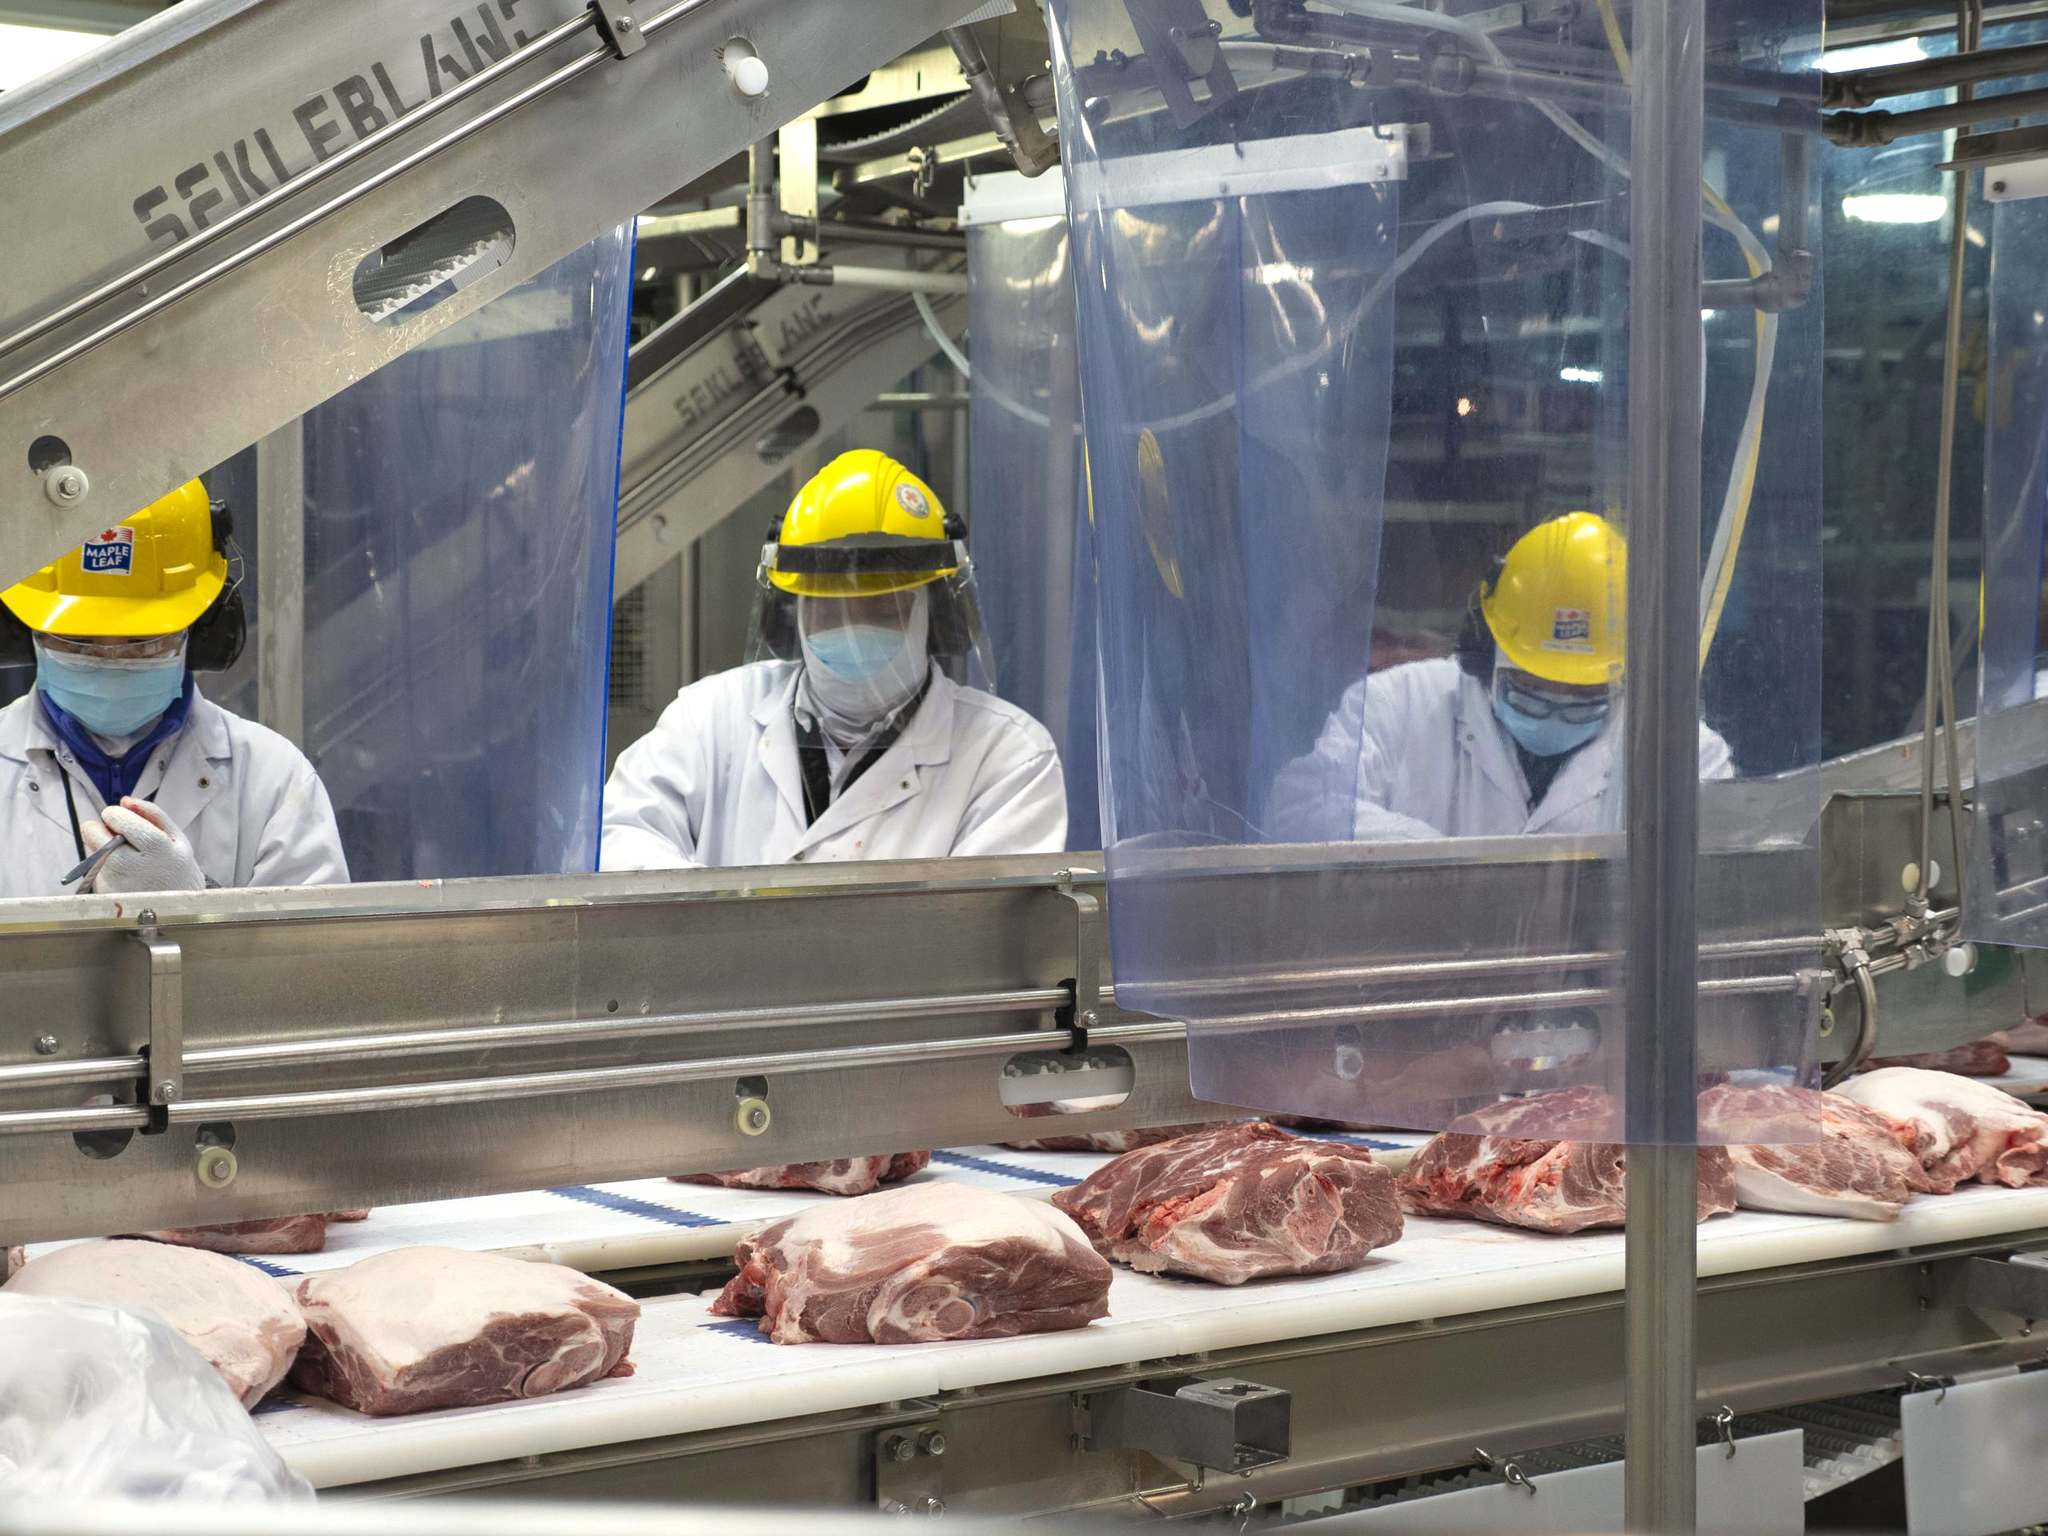 Maple Leaf Foods employees are seen wearing protective gear while working at Brandon's pork processing plant. (Submitted)